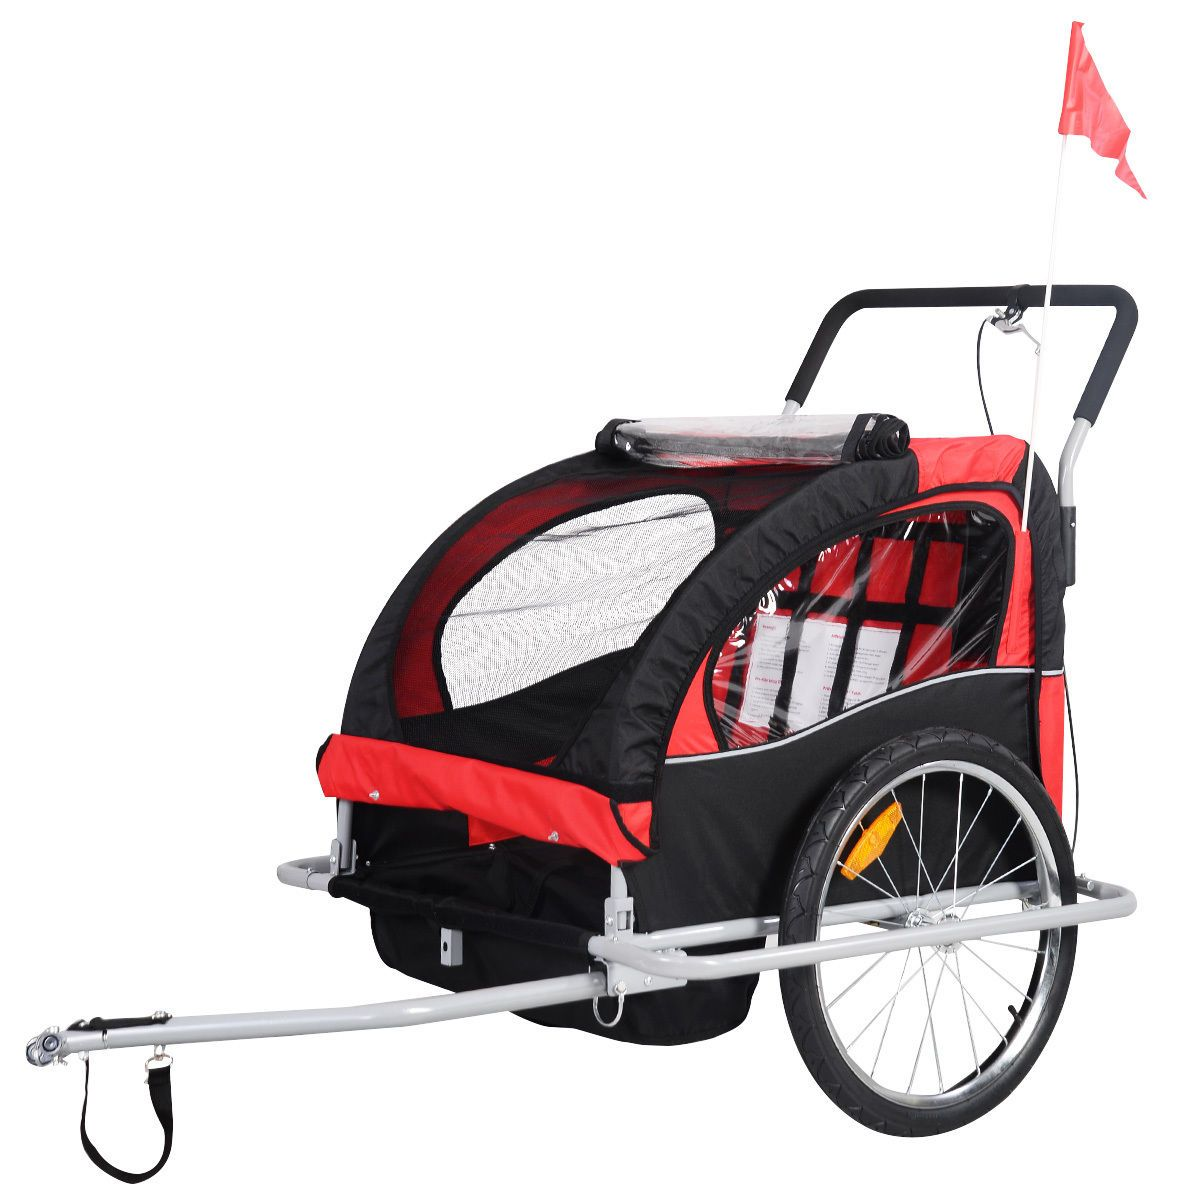 2in1 Double Child Baby Bike Trailer Baby bike, Baby